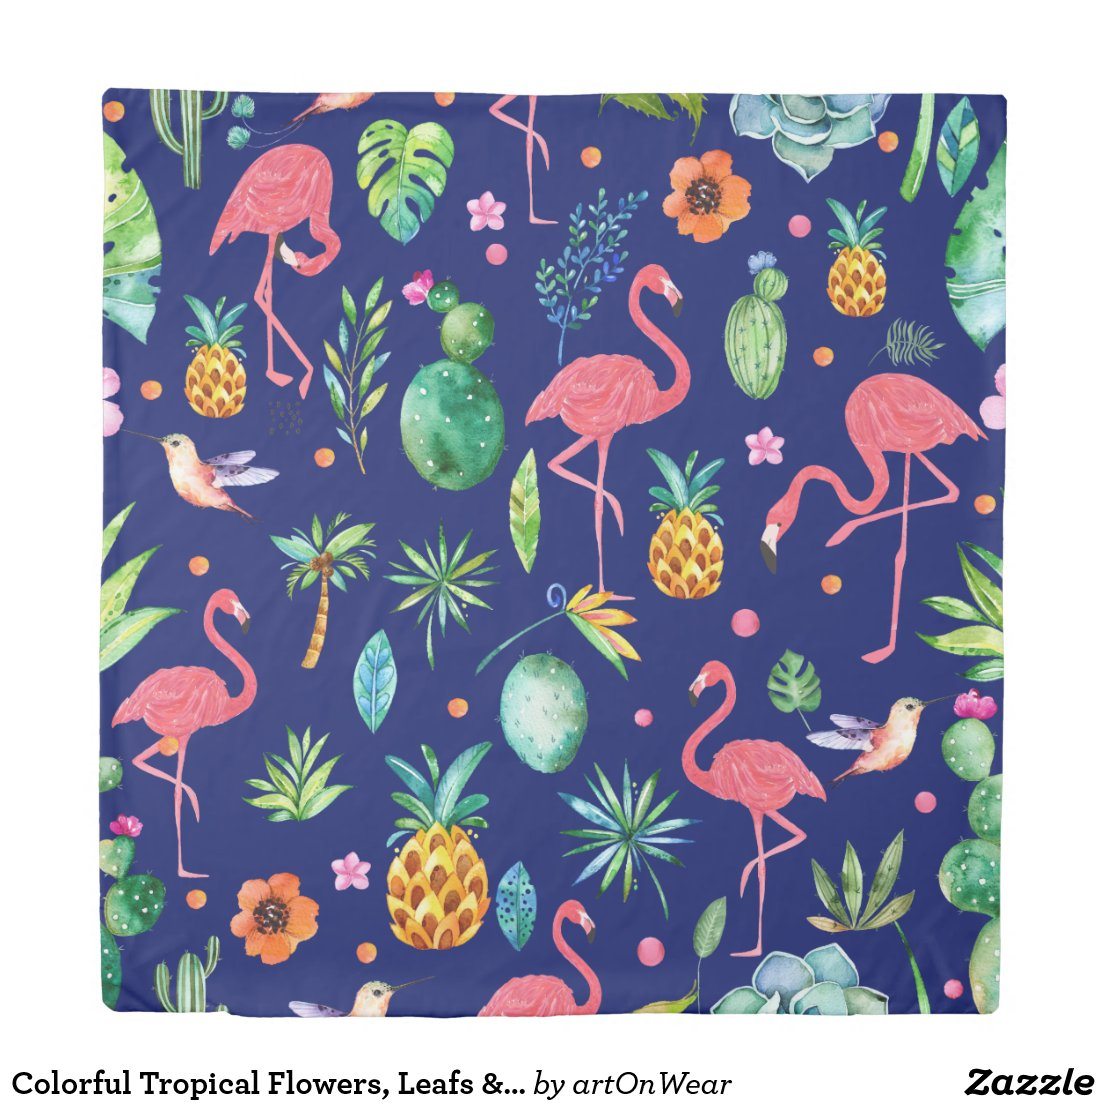 Colorful Tropical Flowers, Leafs & Pink Flamingos